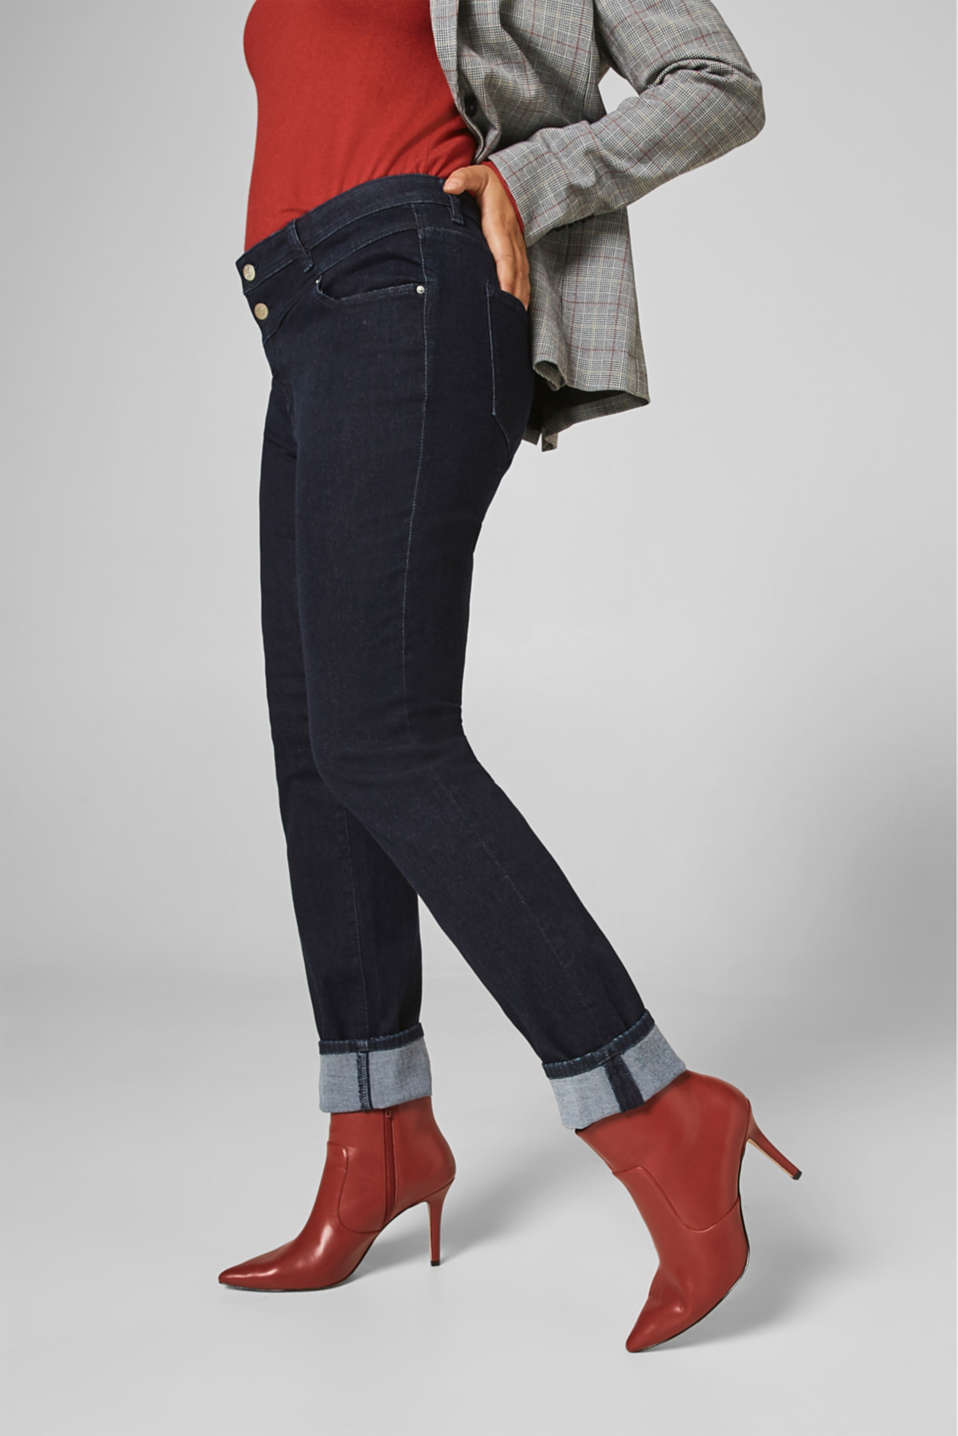 Esprit - ESPRIT CURVES shaping jeans with two buttons